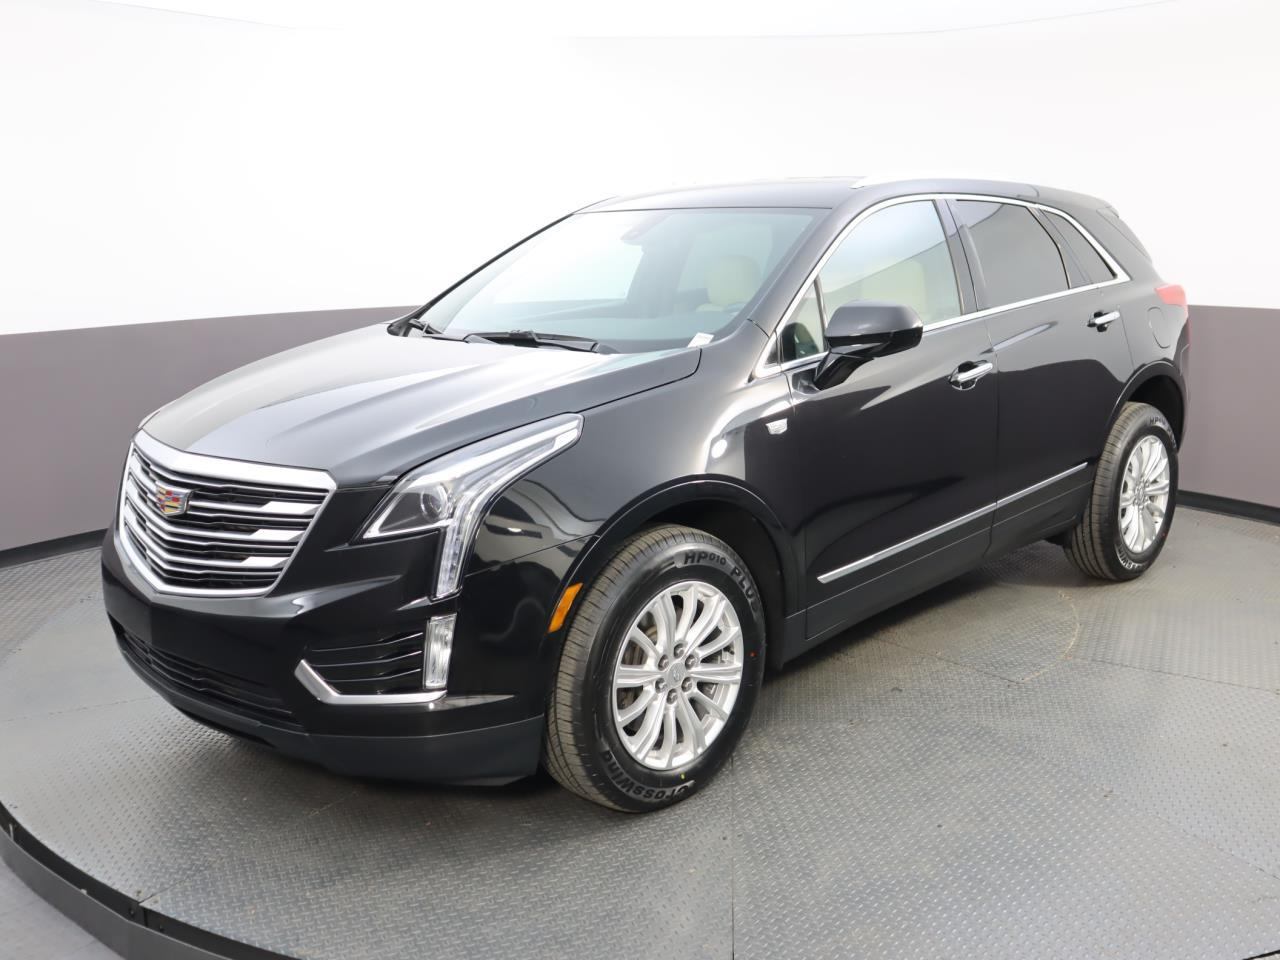 Used CADILLAC XT5 2018 MARGATE FWD